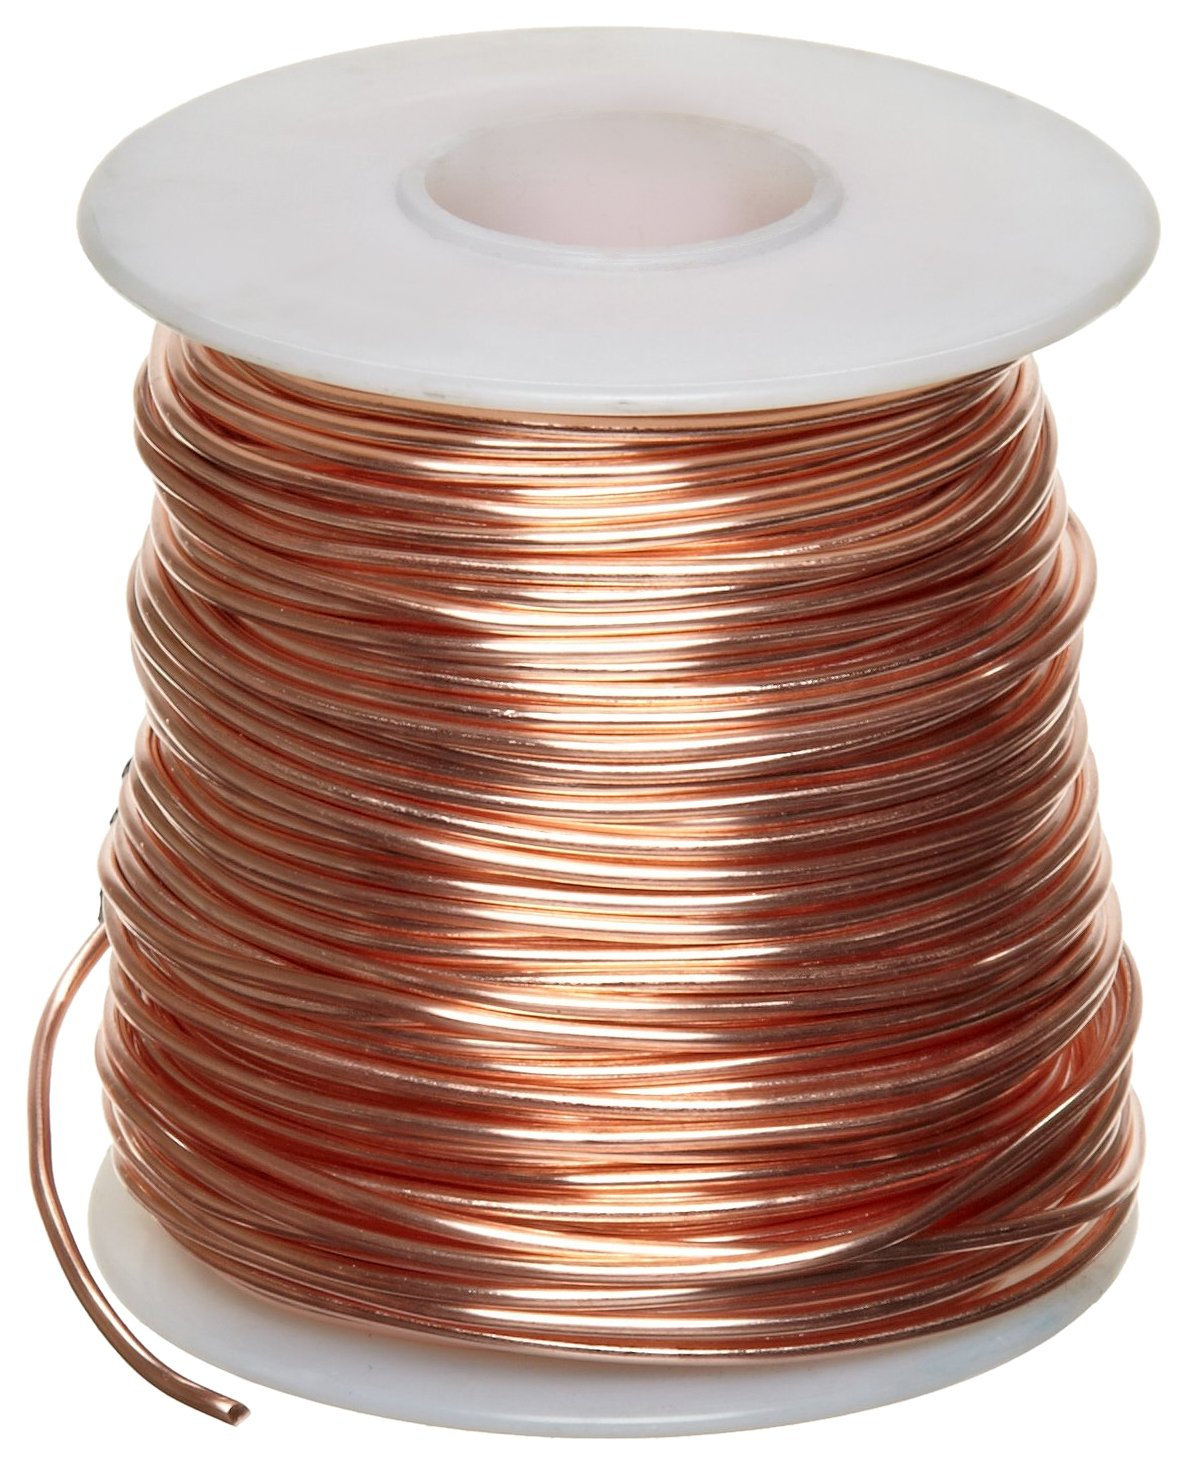 Bare Copper Wire, Bright, 16 AWG, 0.05'' Diameter, 630' Length (Pack of 1) by Small Parts